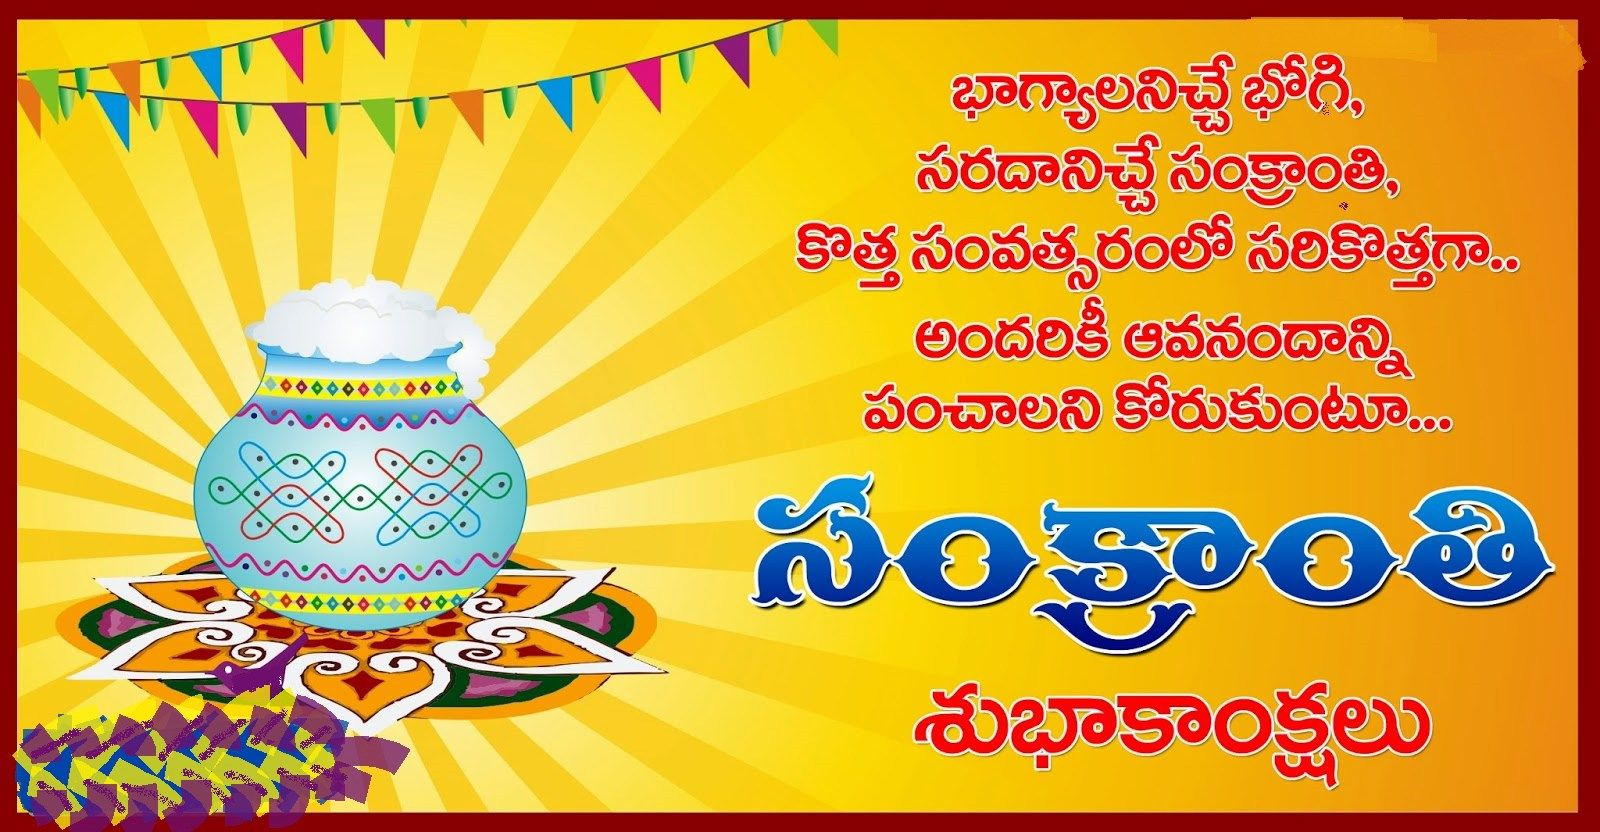 happy makar sankranti 2018 images quotes wallpapers download in 2020 happy makar sankranti images sankranti wishes images happy sankranti happy makar sankranti images